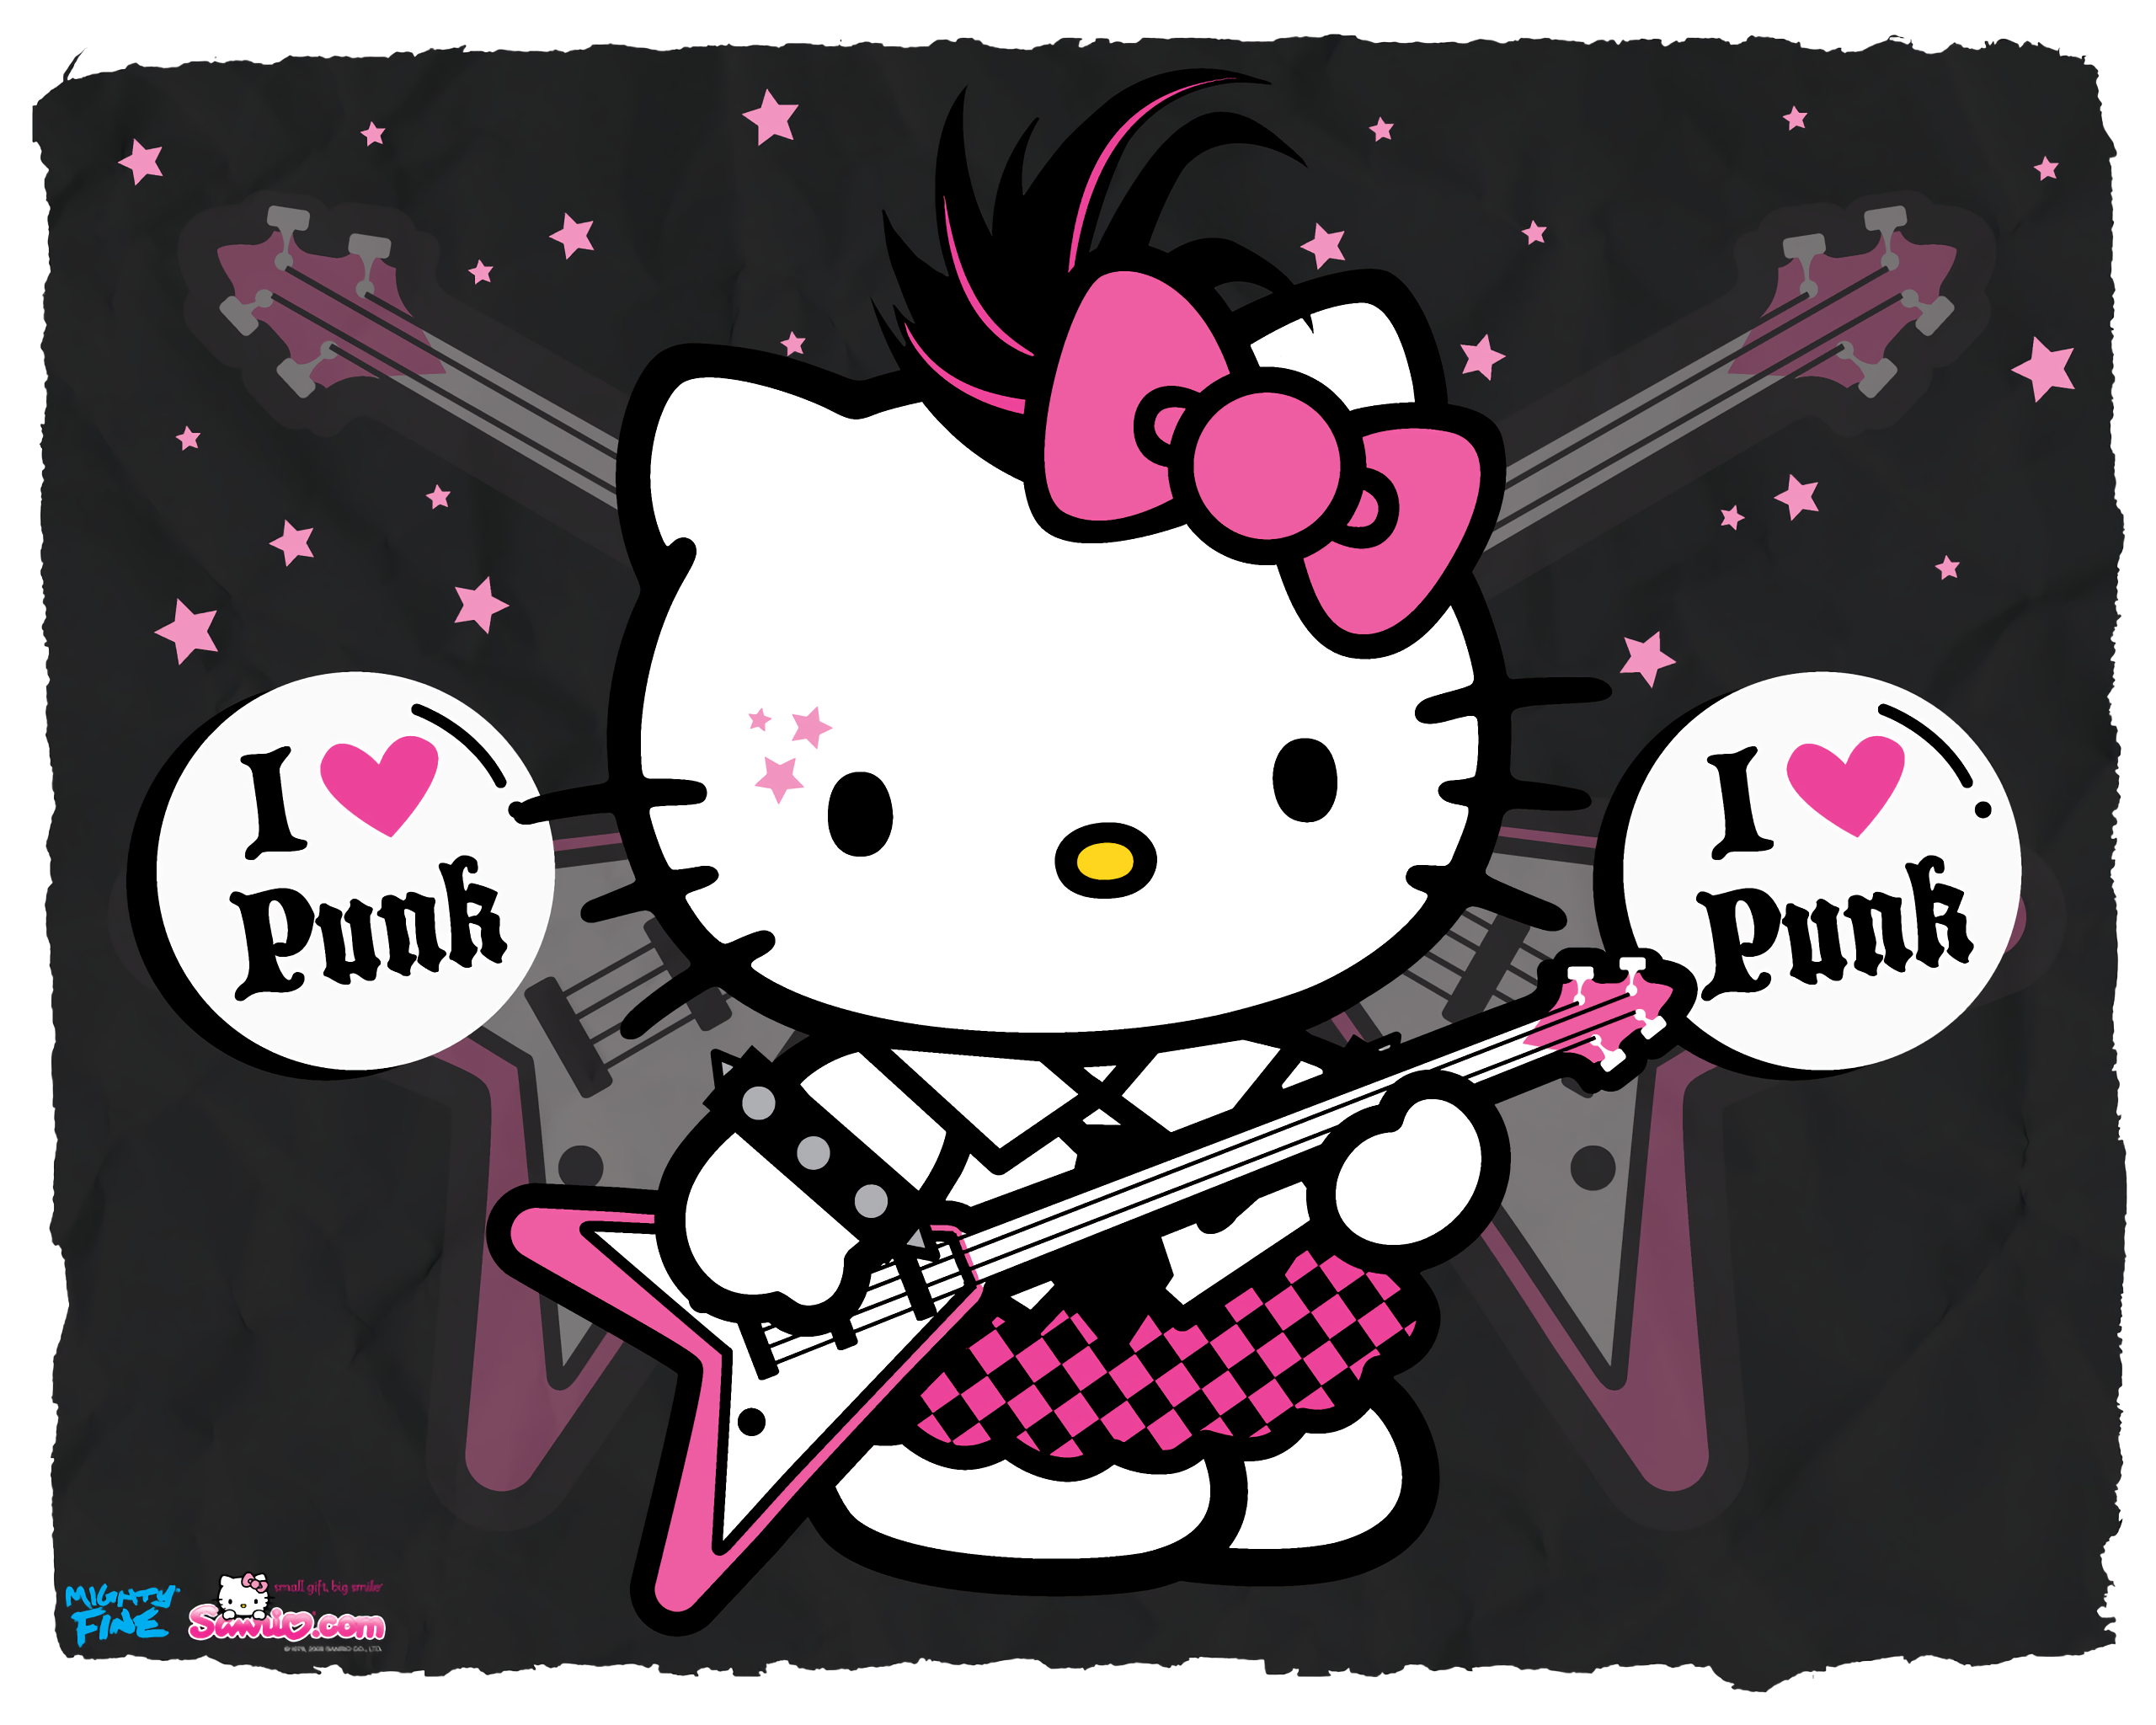 Who android wallpaper pictures of snow free hello kitty wallpaper - The Top Free Hello Kitty Wallpapers